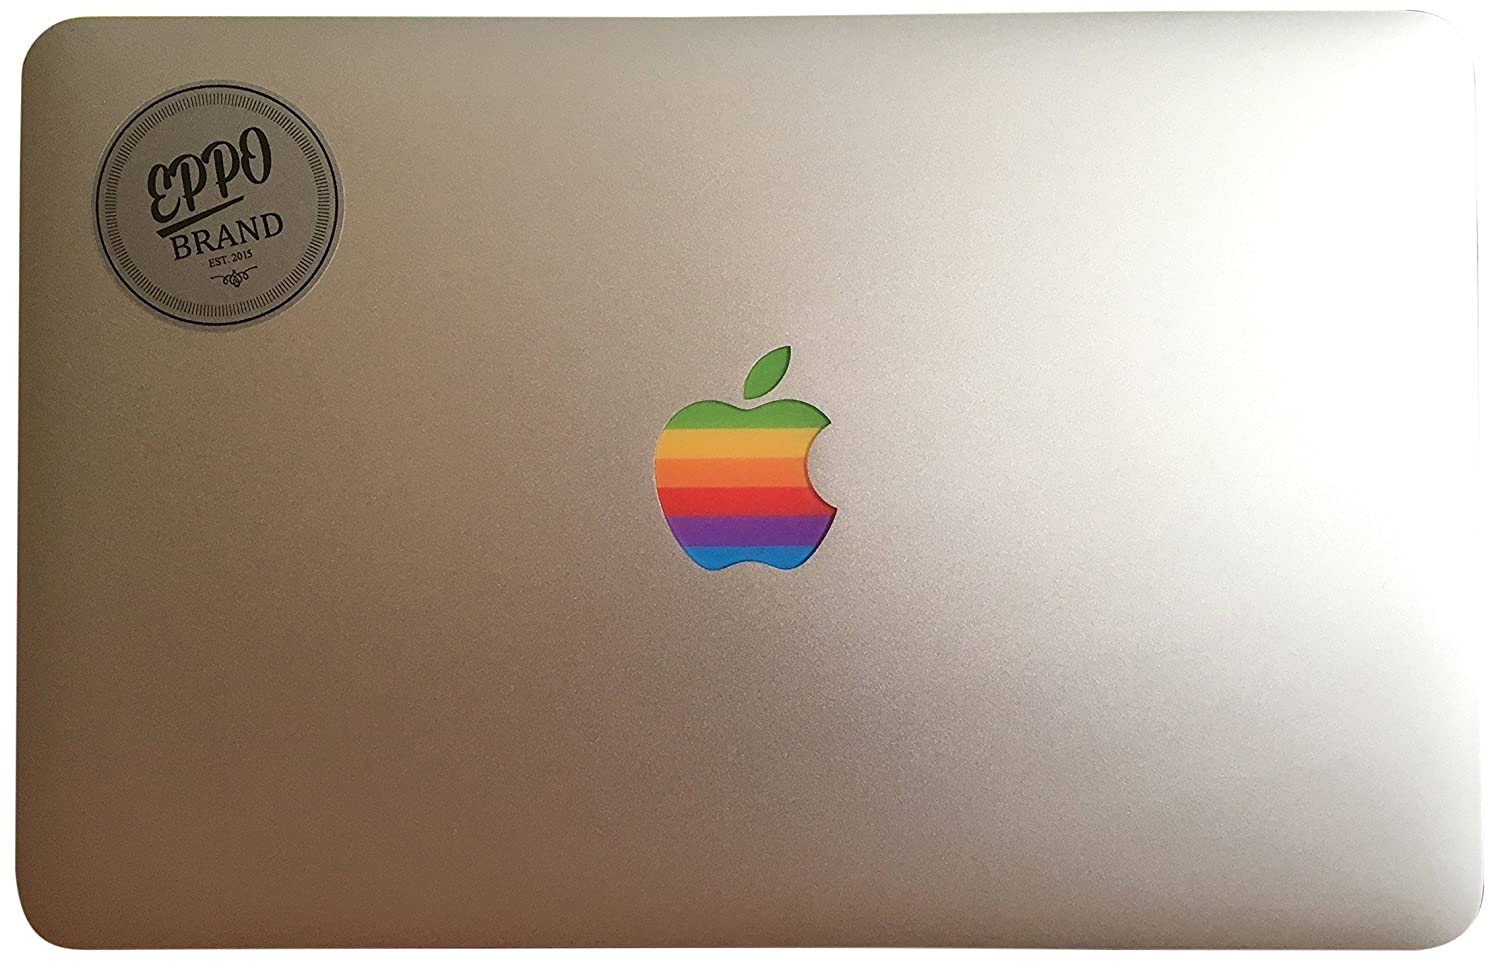 Amazon com eppo brand rr 12 6 11 design art apple old retro rainbow multicolour logo sticker decal for 11 13 15 inch macbook pro air laptop with glowing